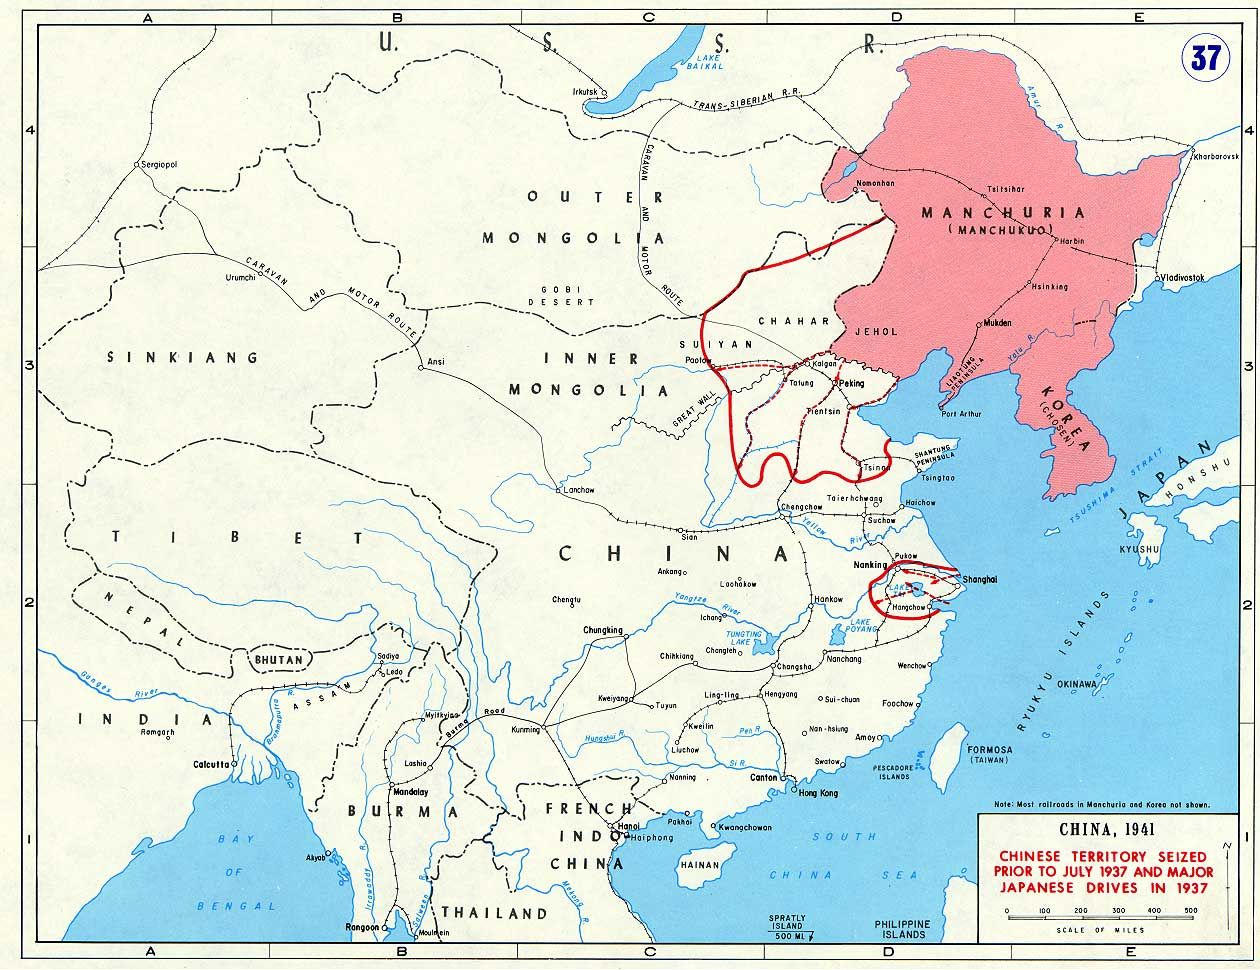 Chinese Territory Seized Prior To July And Major